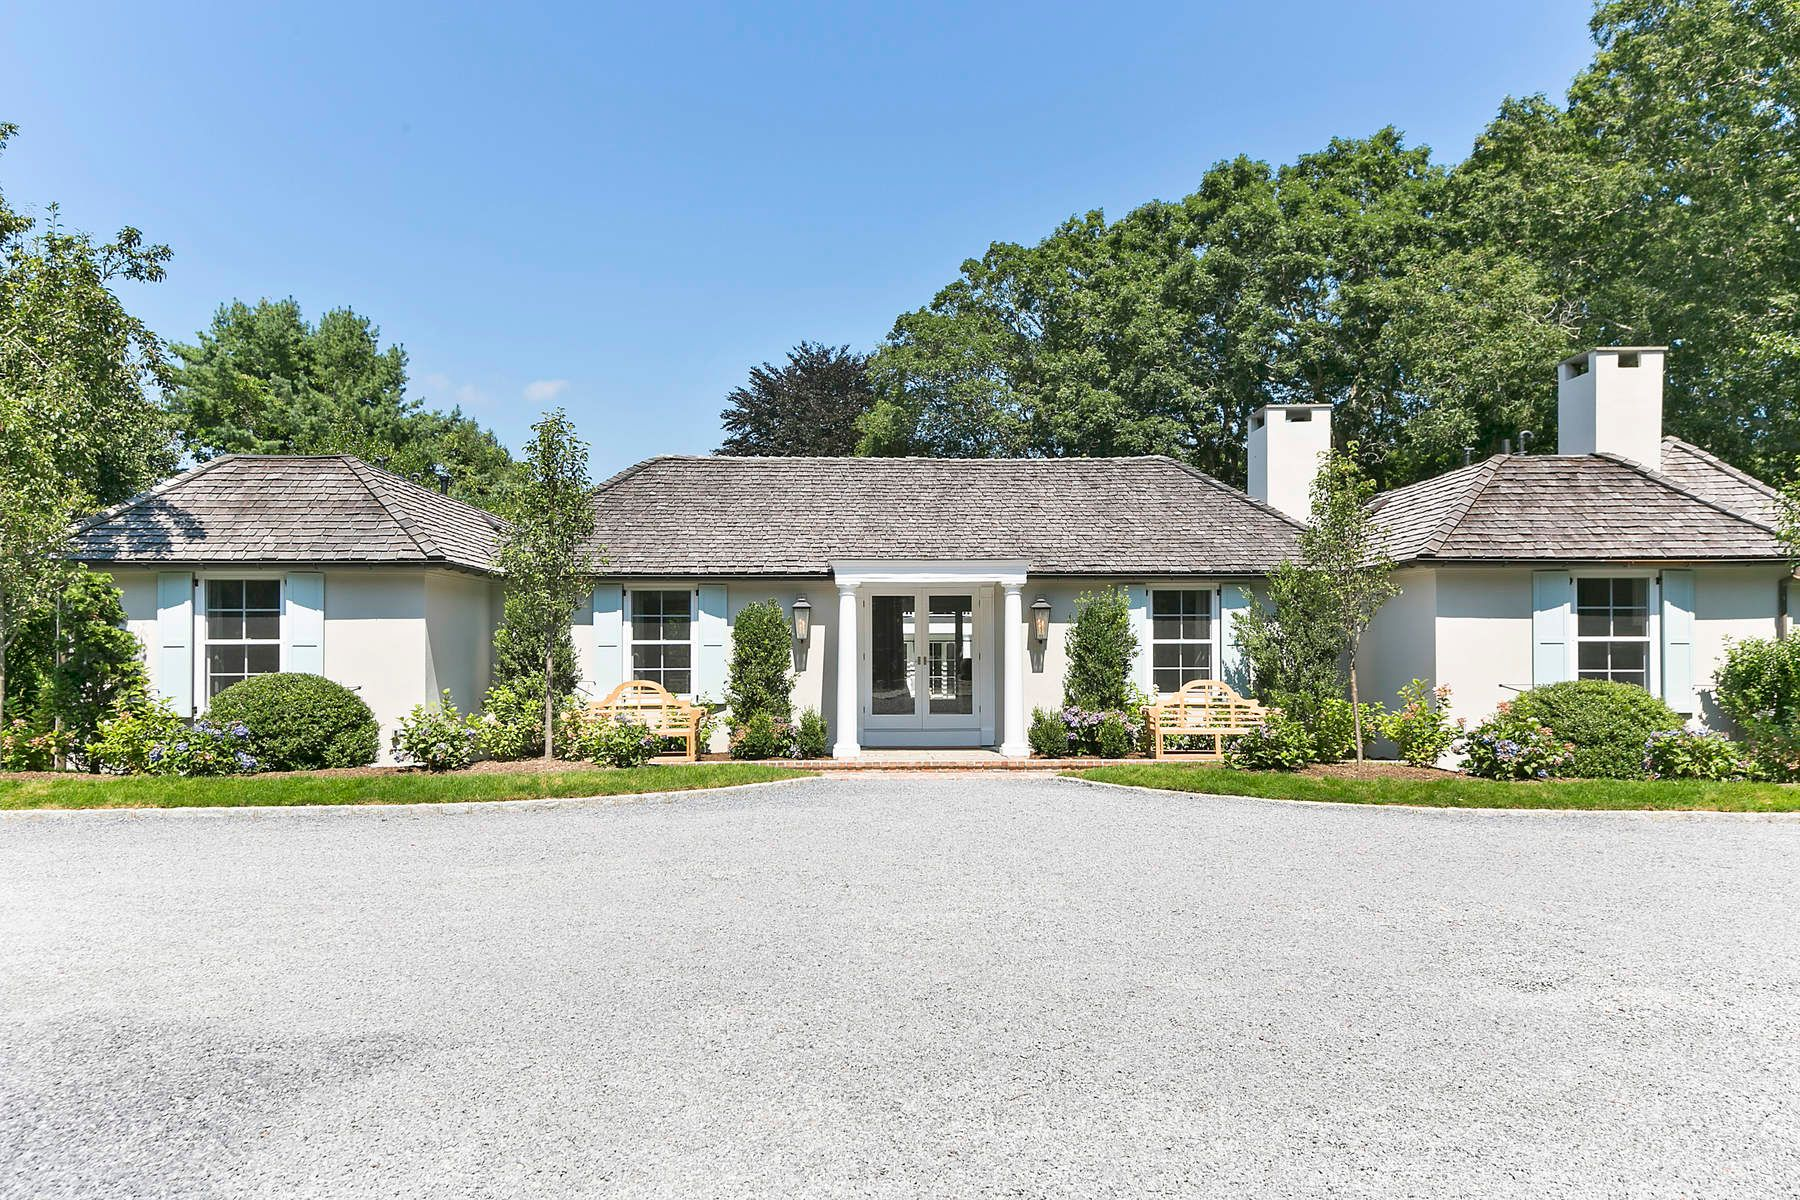 Single Family Home for sale in 224 And 234 Tuckahoe Road, Southampton, NY ,11968